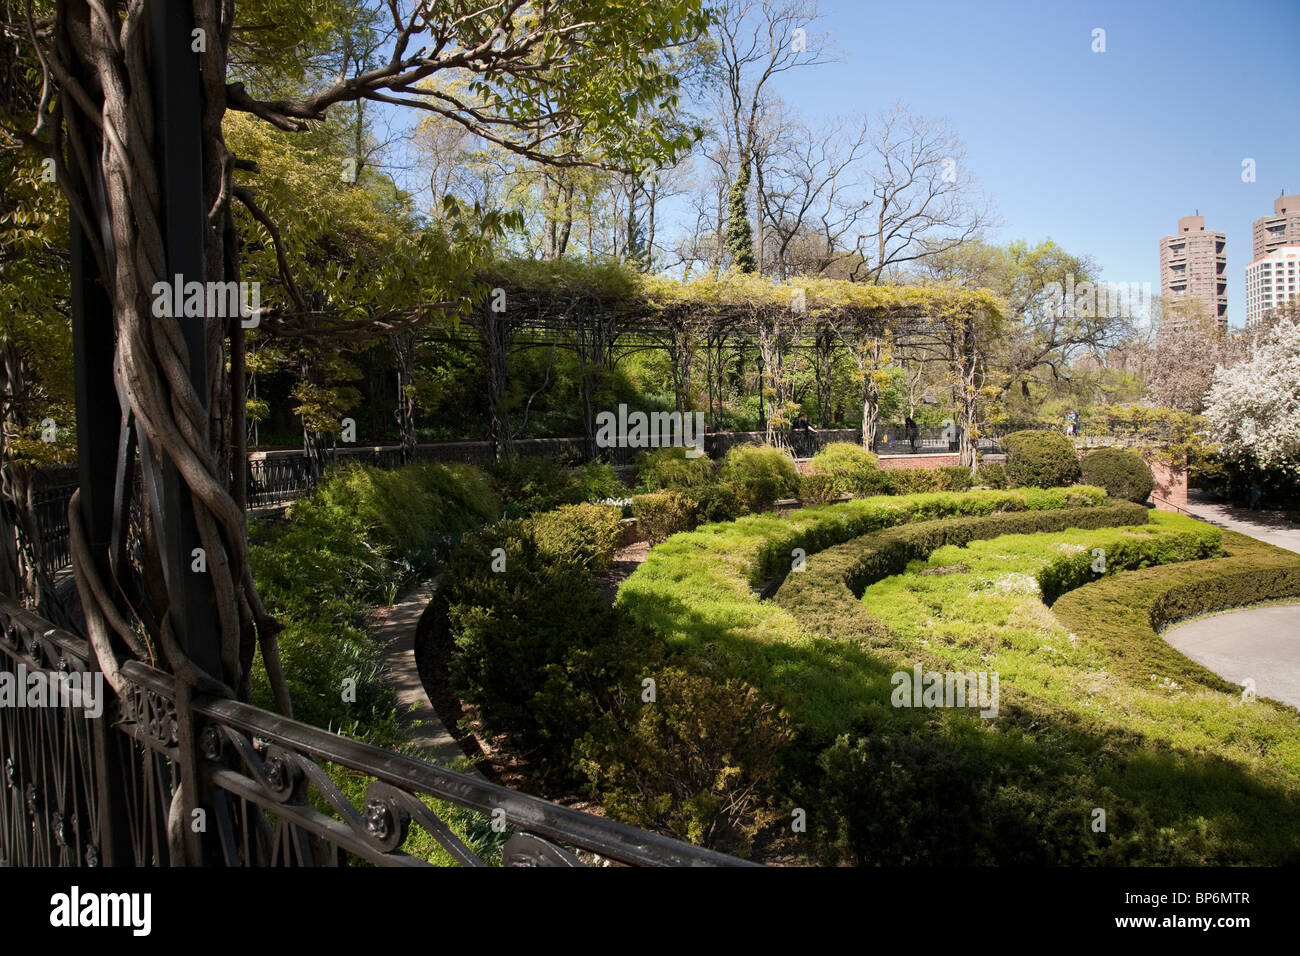 The Conservatory Garden, Central Park, NYC - Stock Image